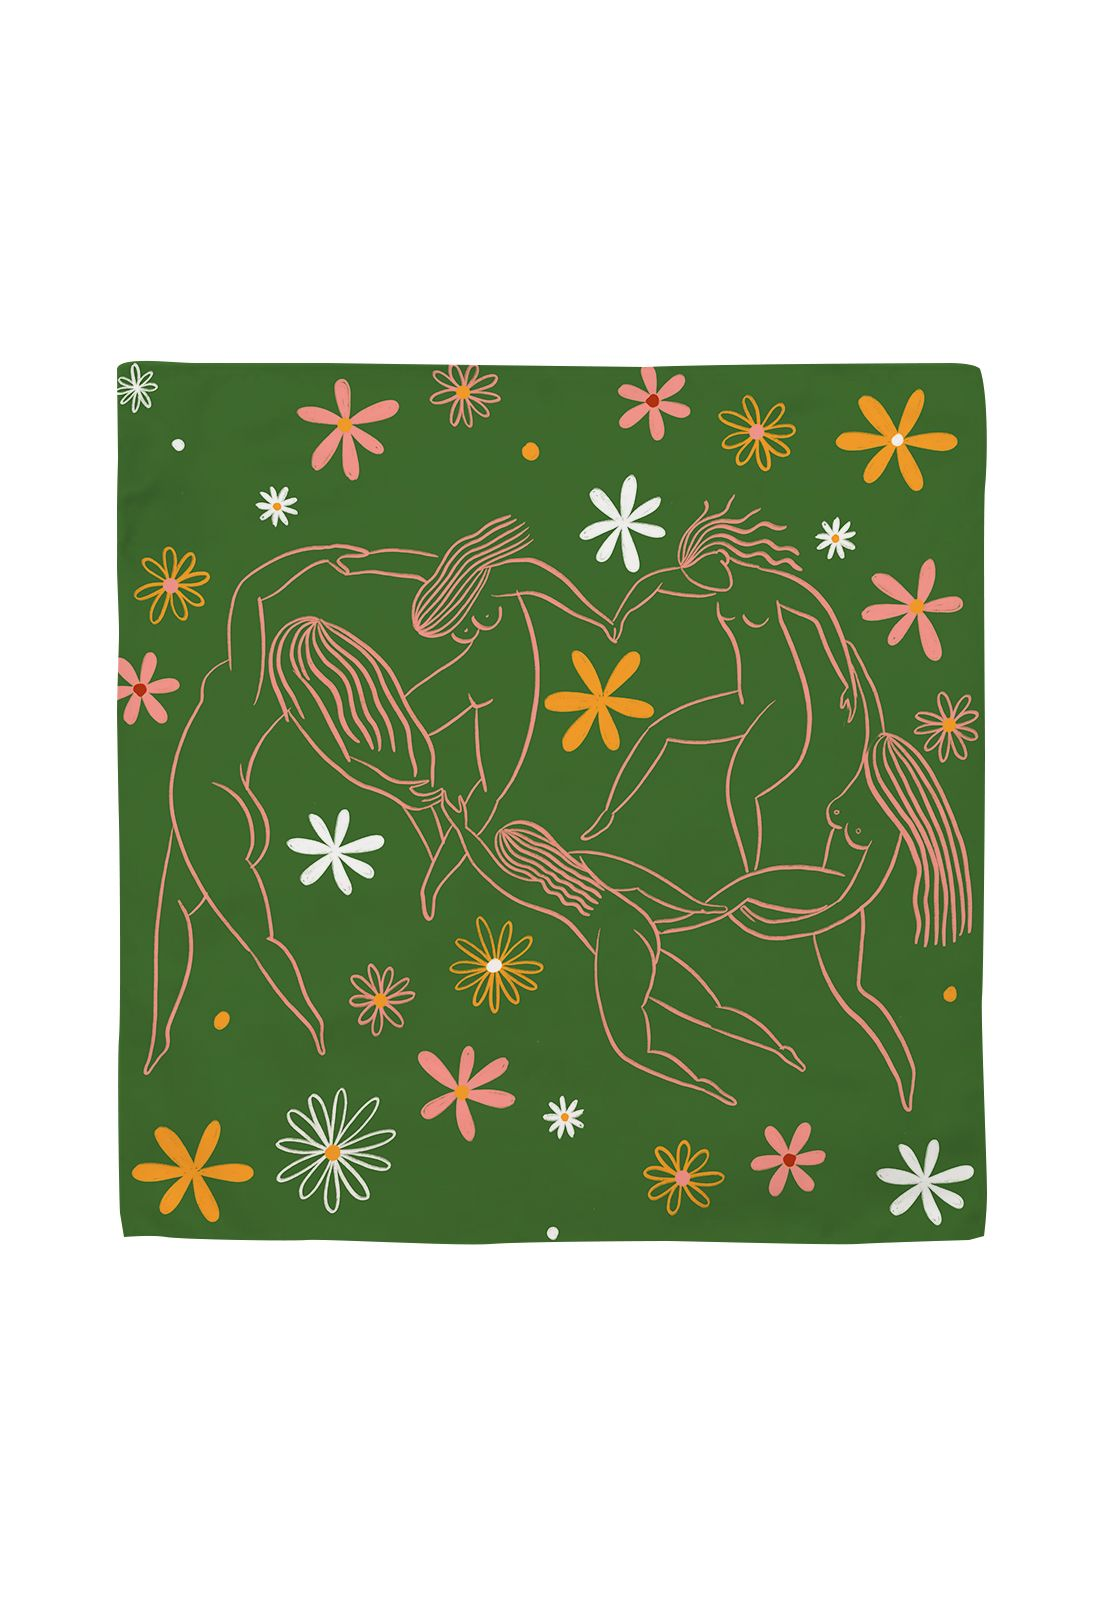 PA?UELO MATISSE LADIES IN GREEN